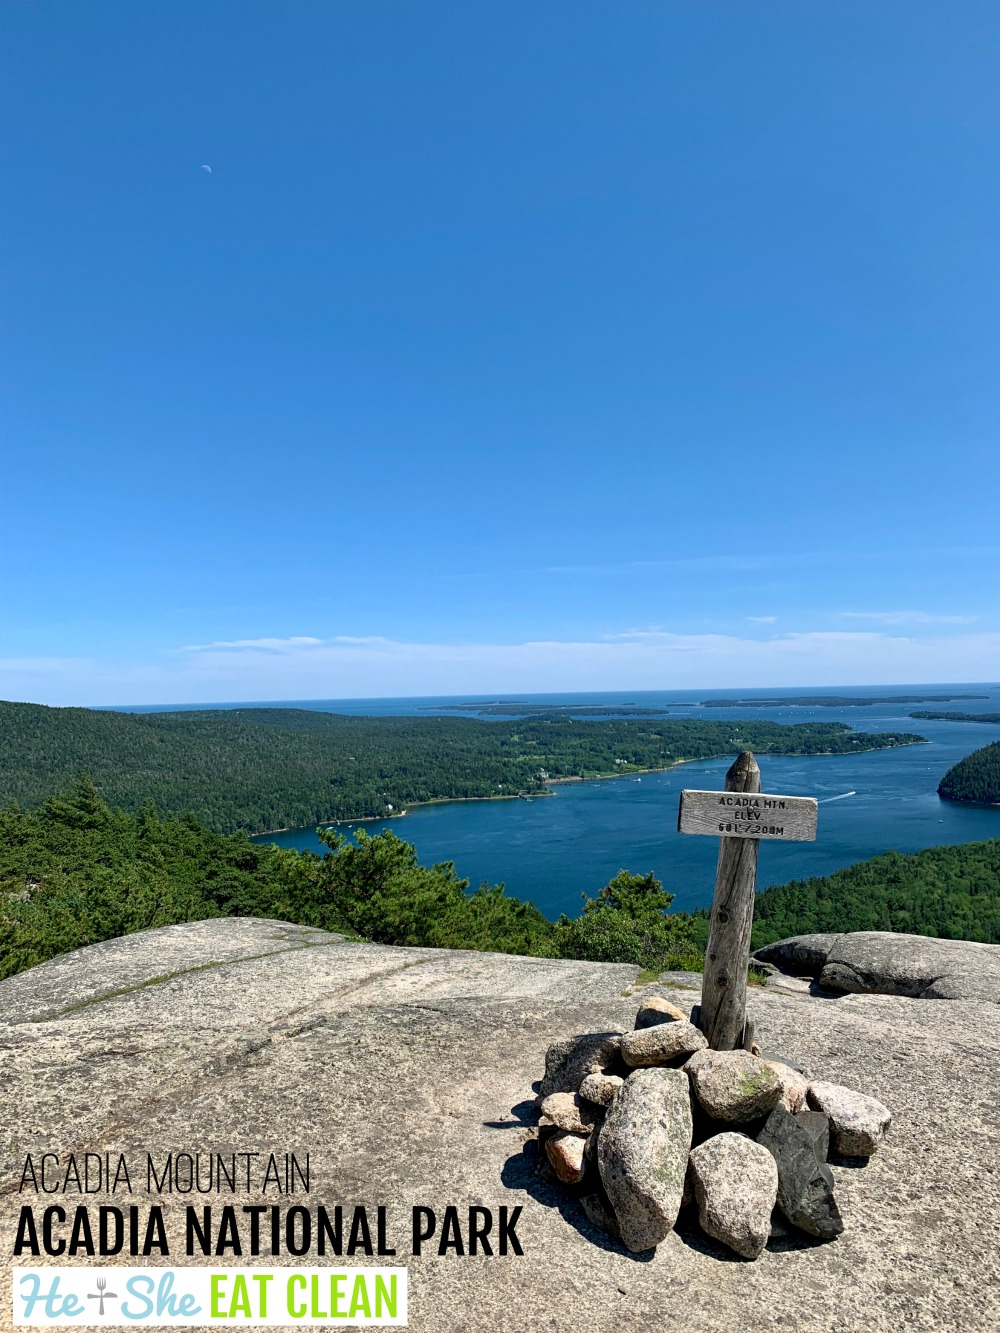 landscape photo of the summit of Acadia Mountain in Acadia National Park with the ocean in the background